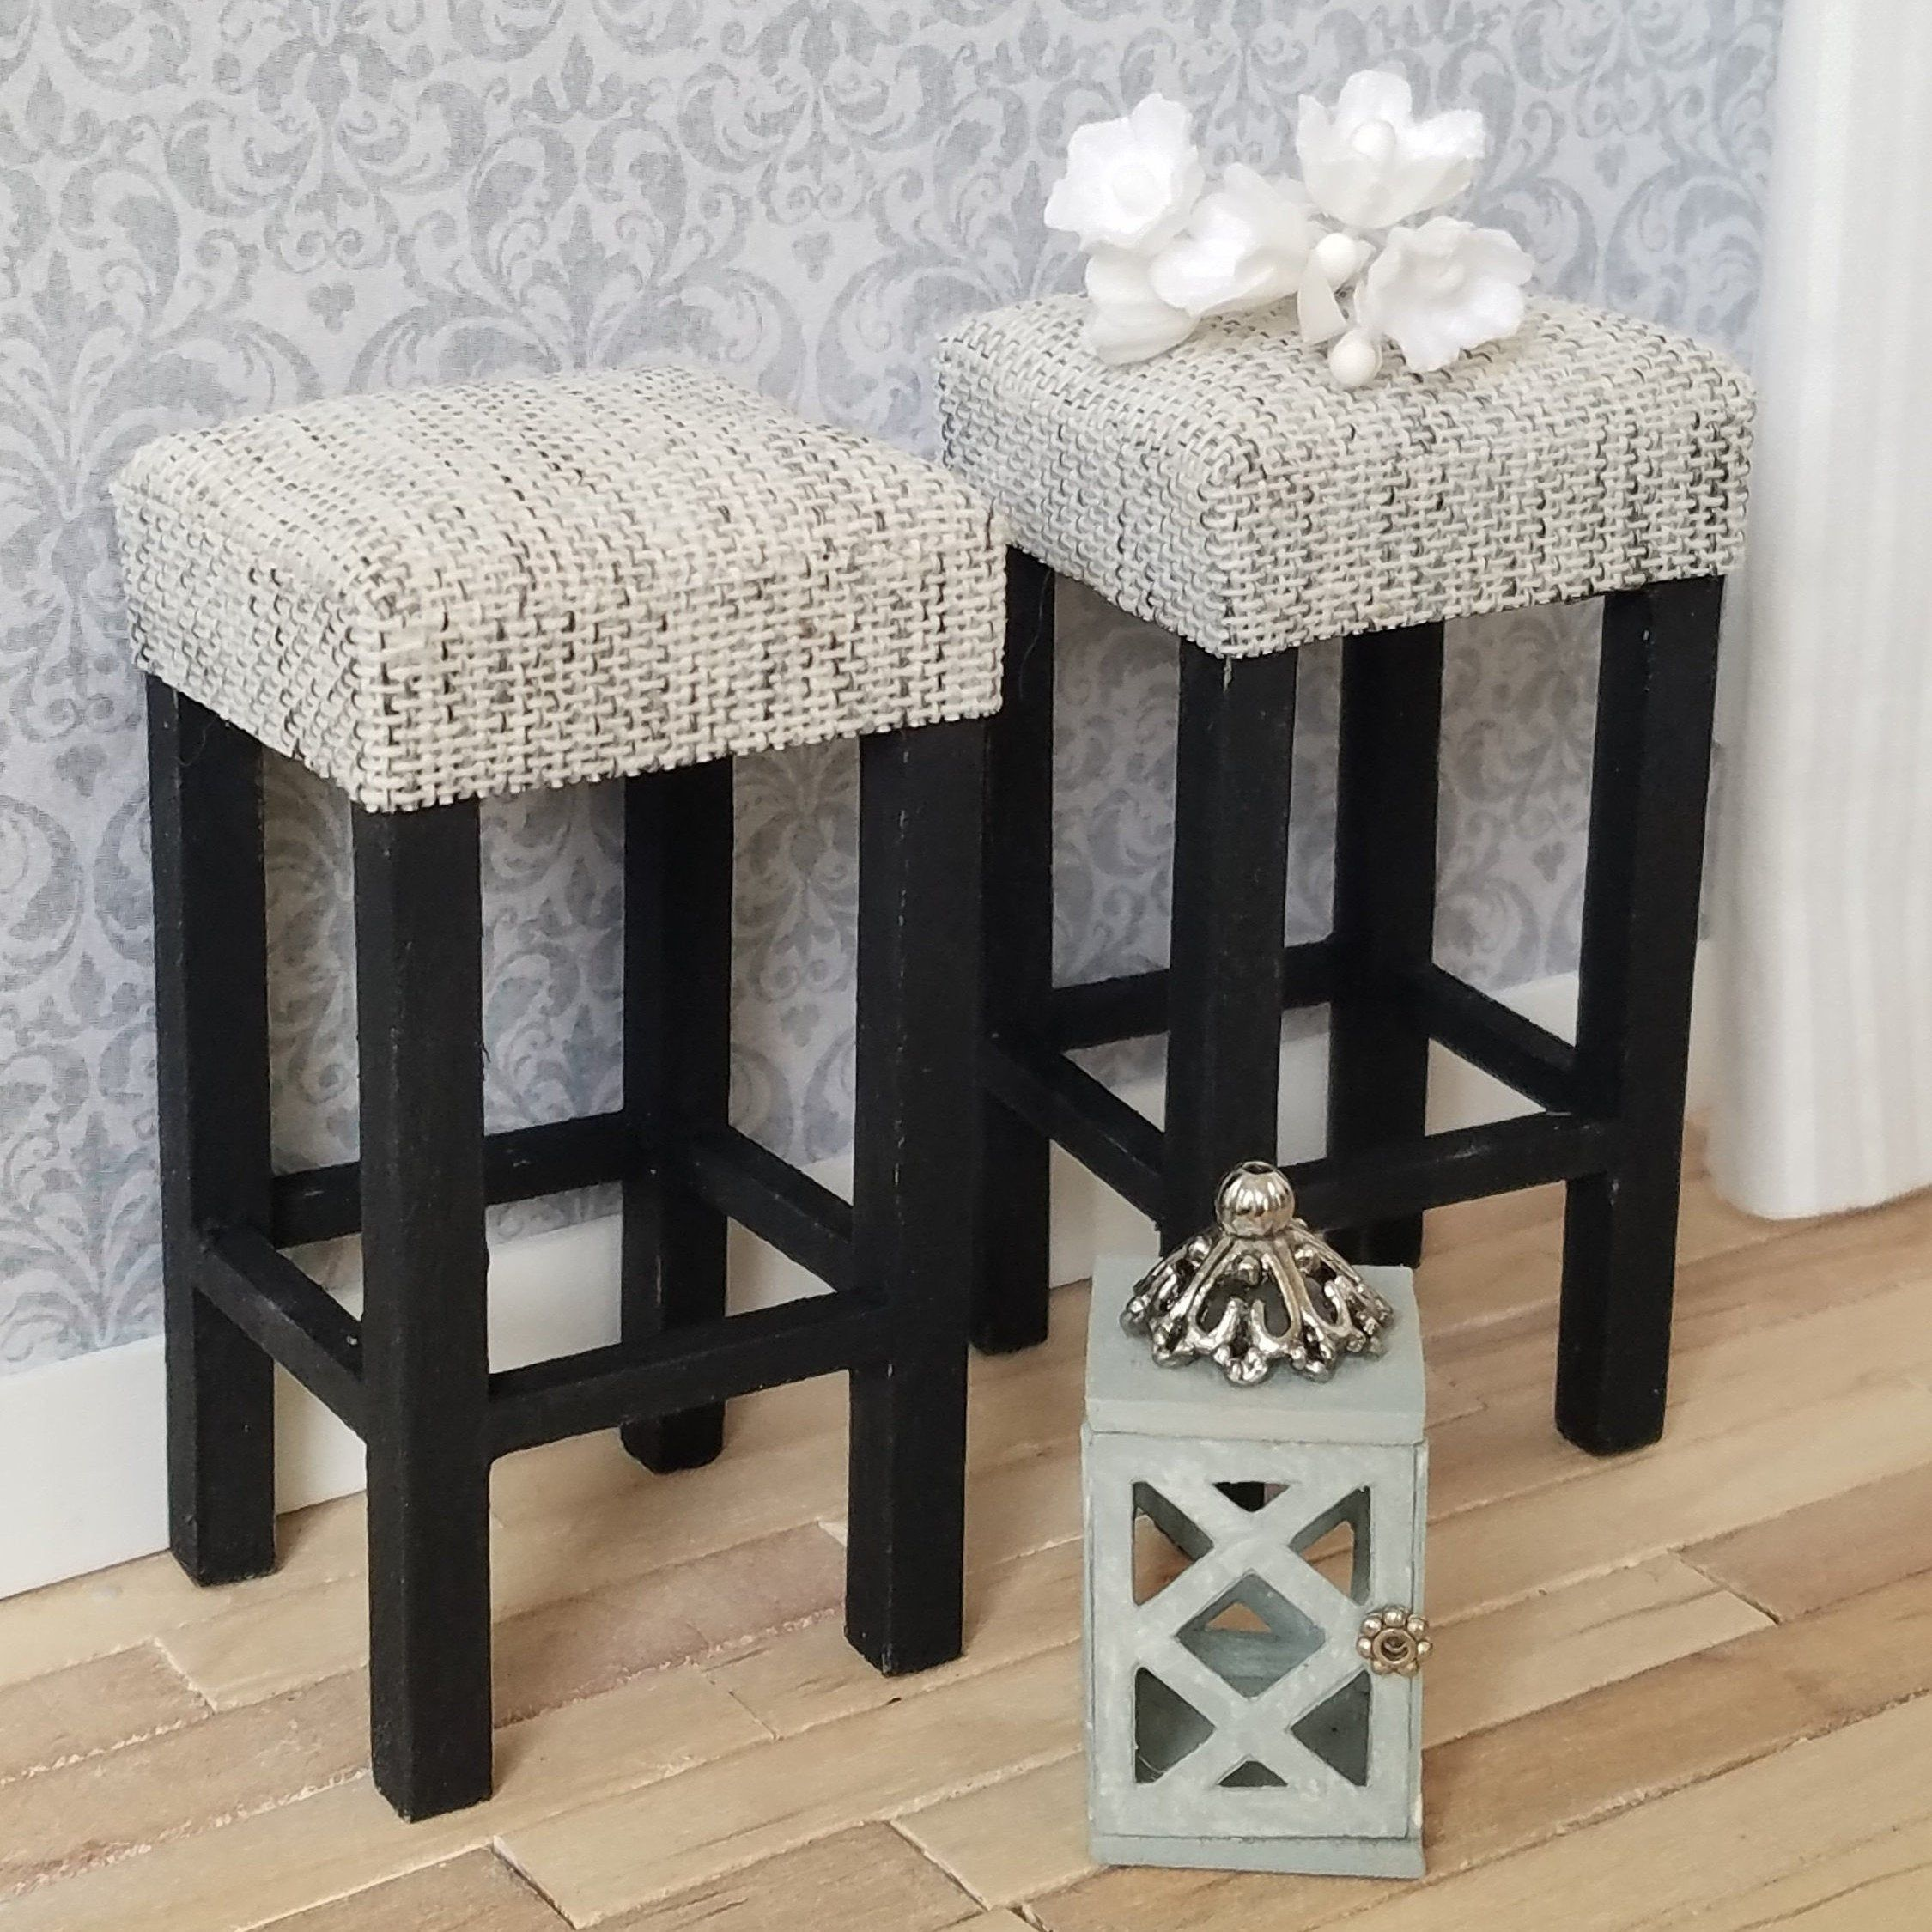 Miniature Bar Stools Miniature Tall Stools Kitchen Stools